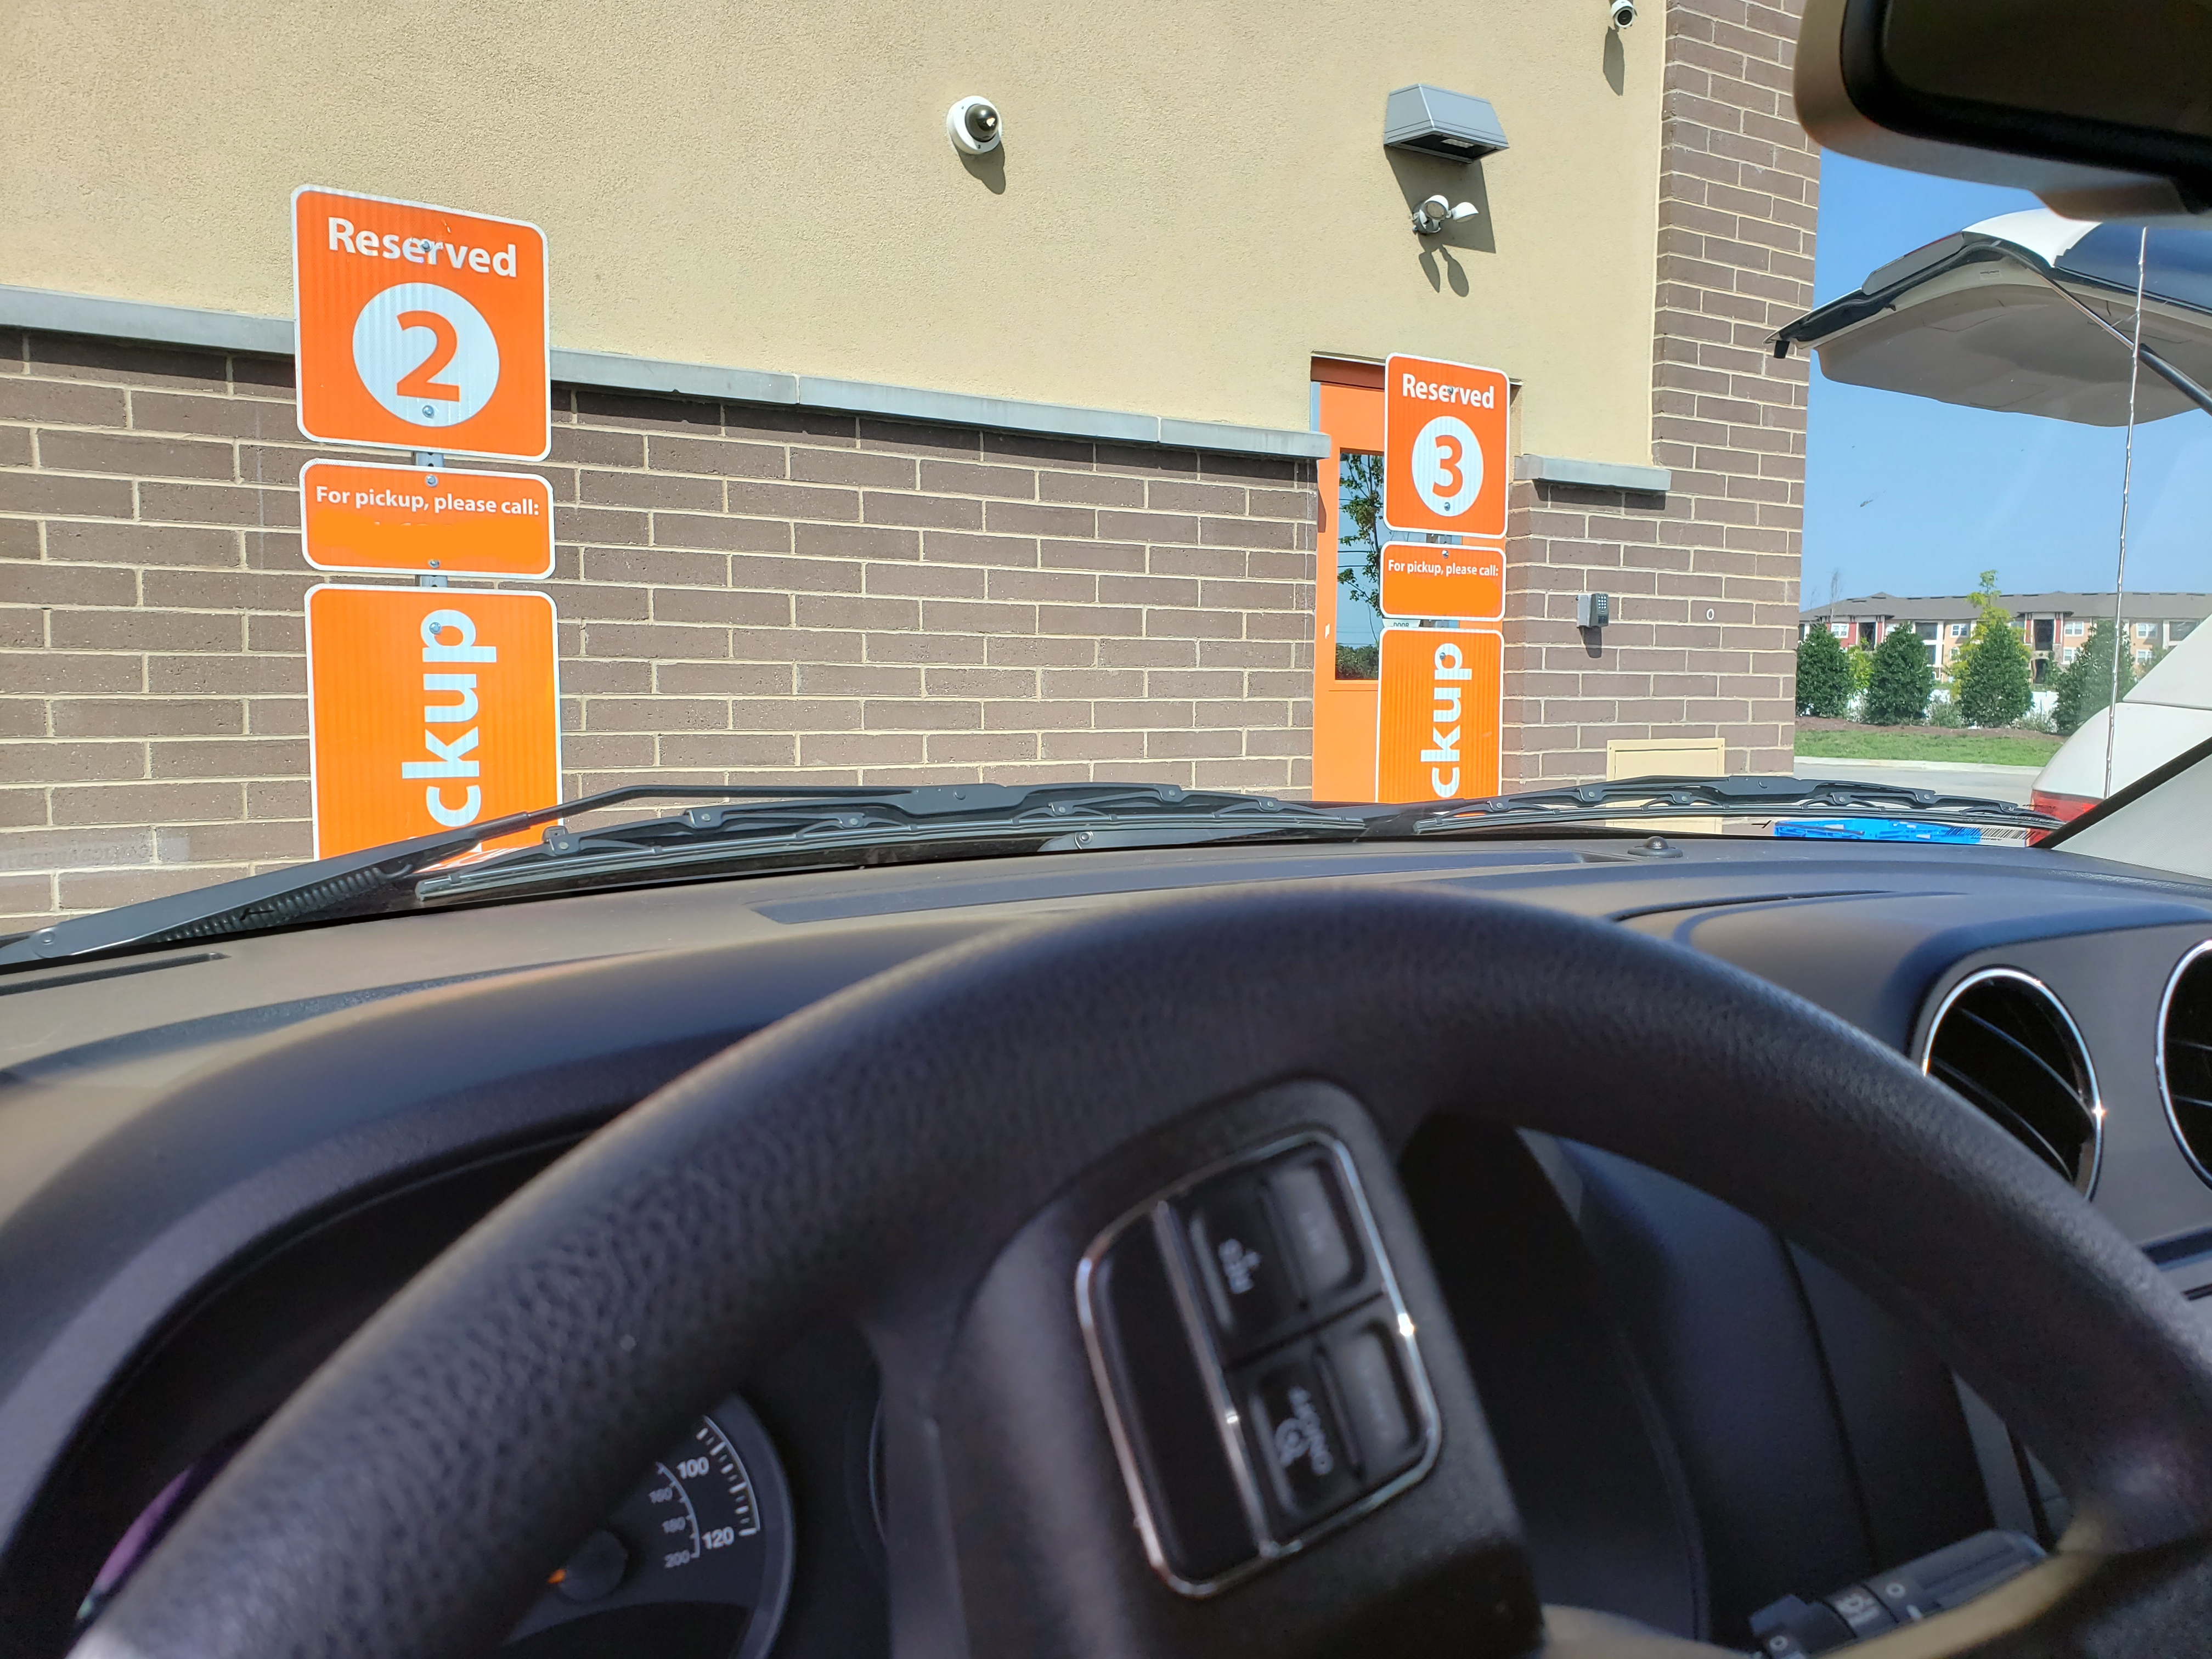 The Newest Hot Spot in Retail: Curbside